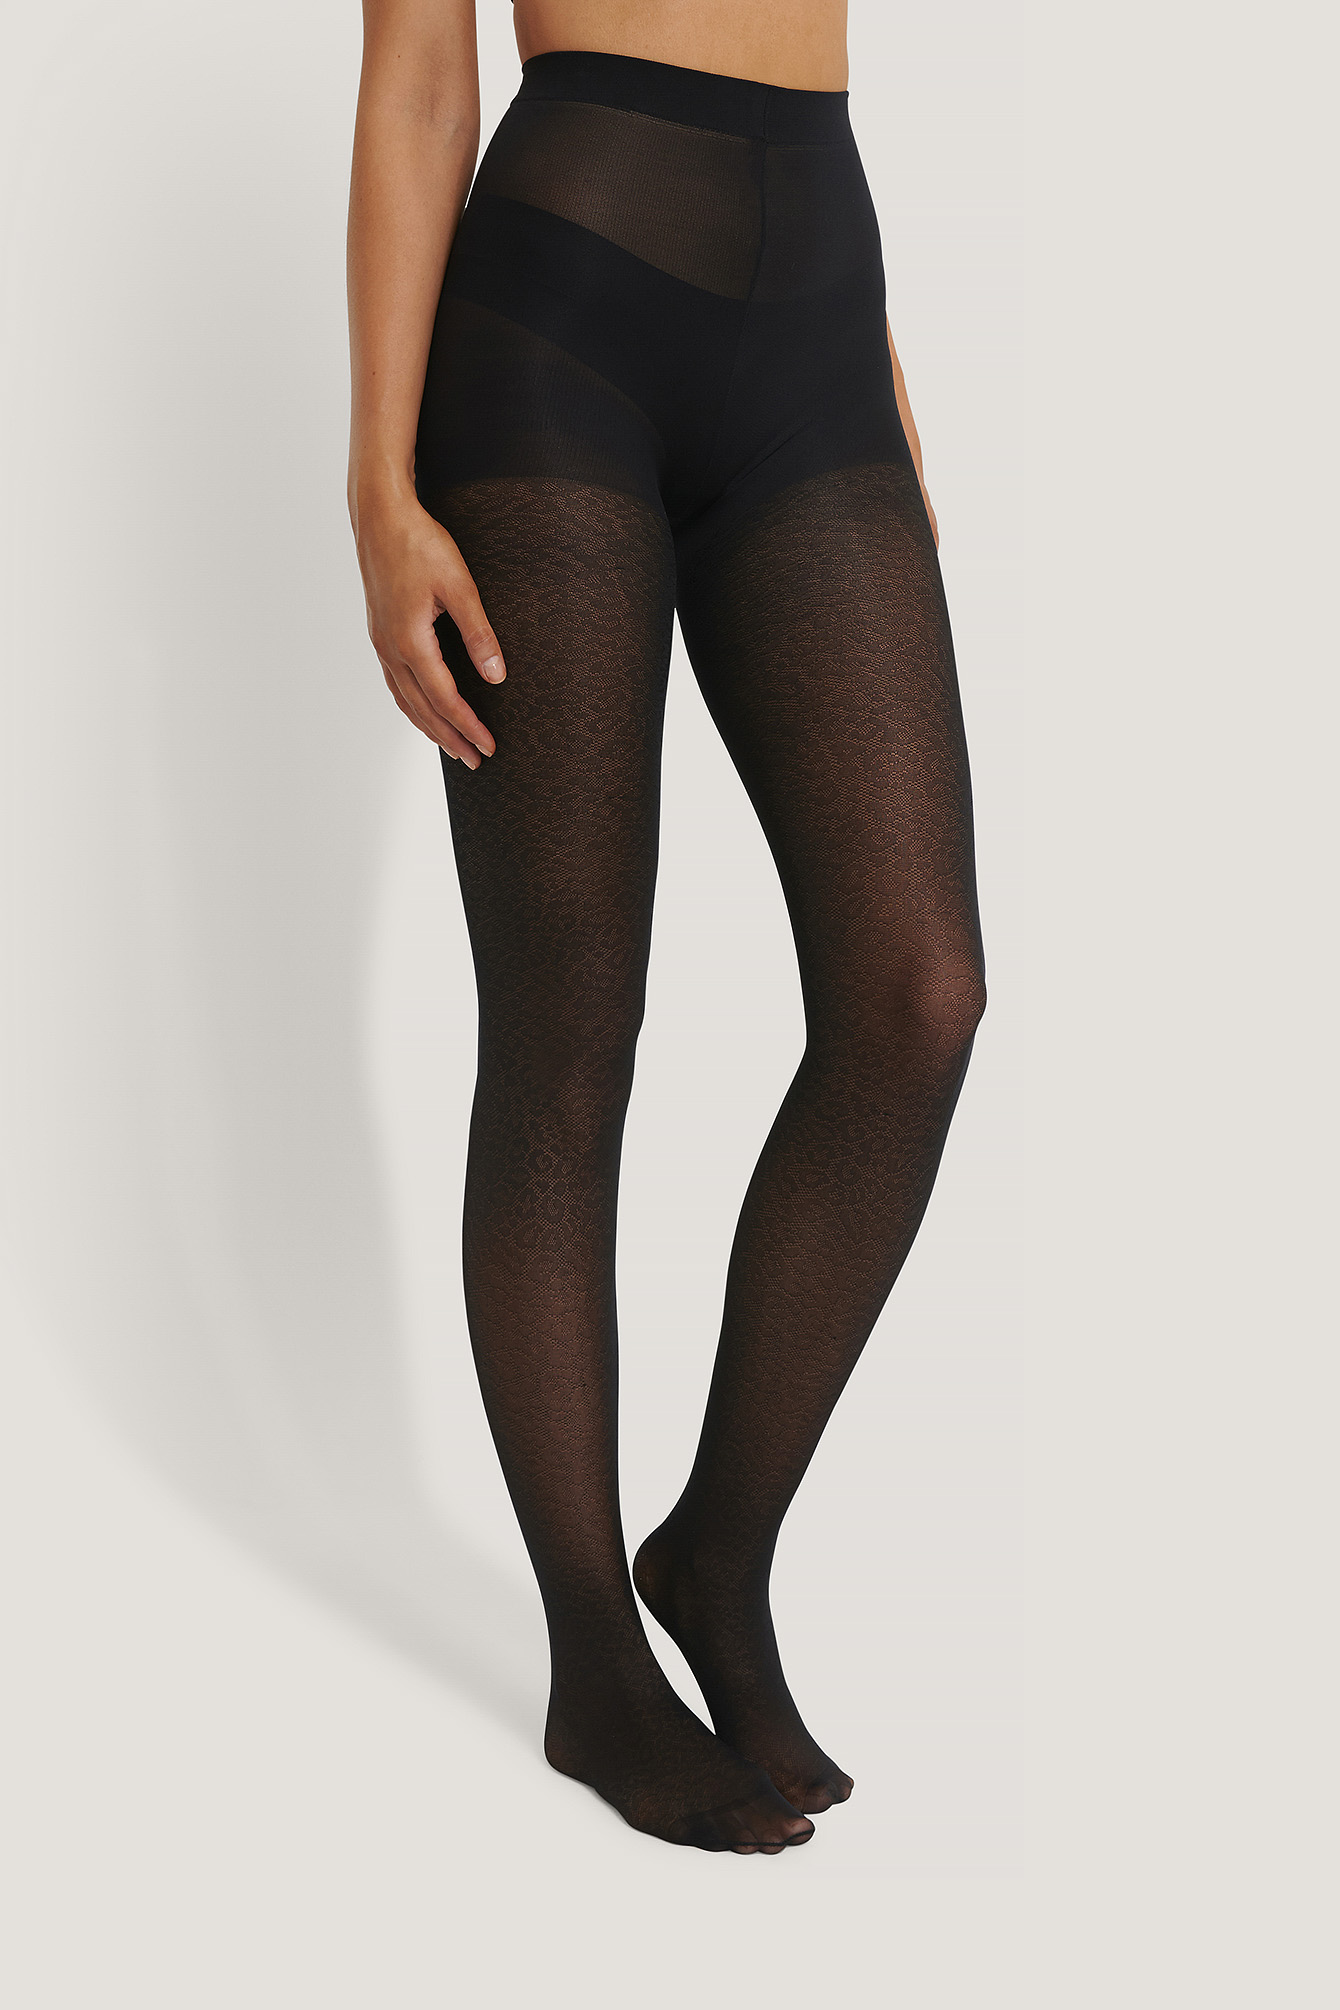 Black Leo Tights 50 DEN